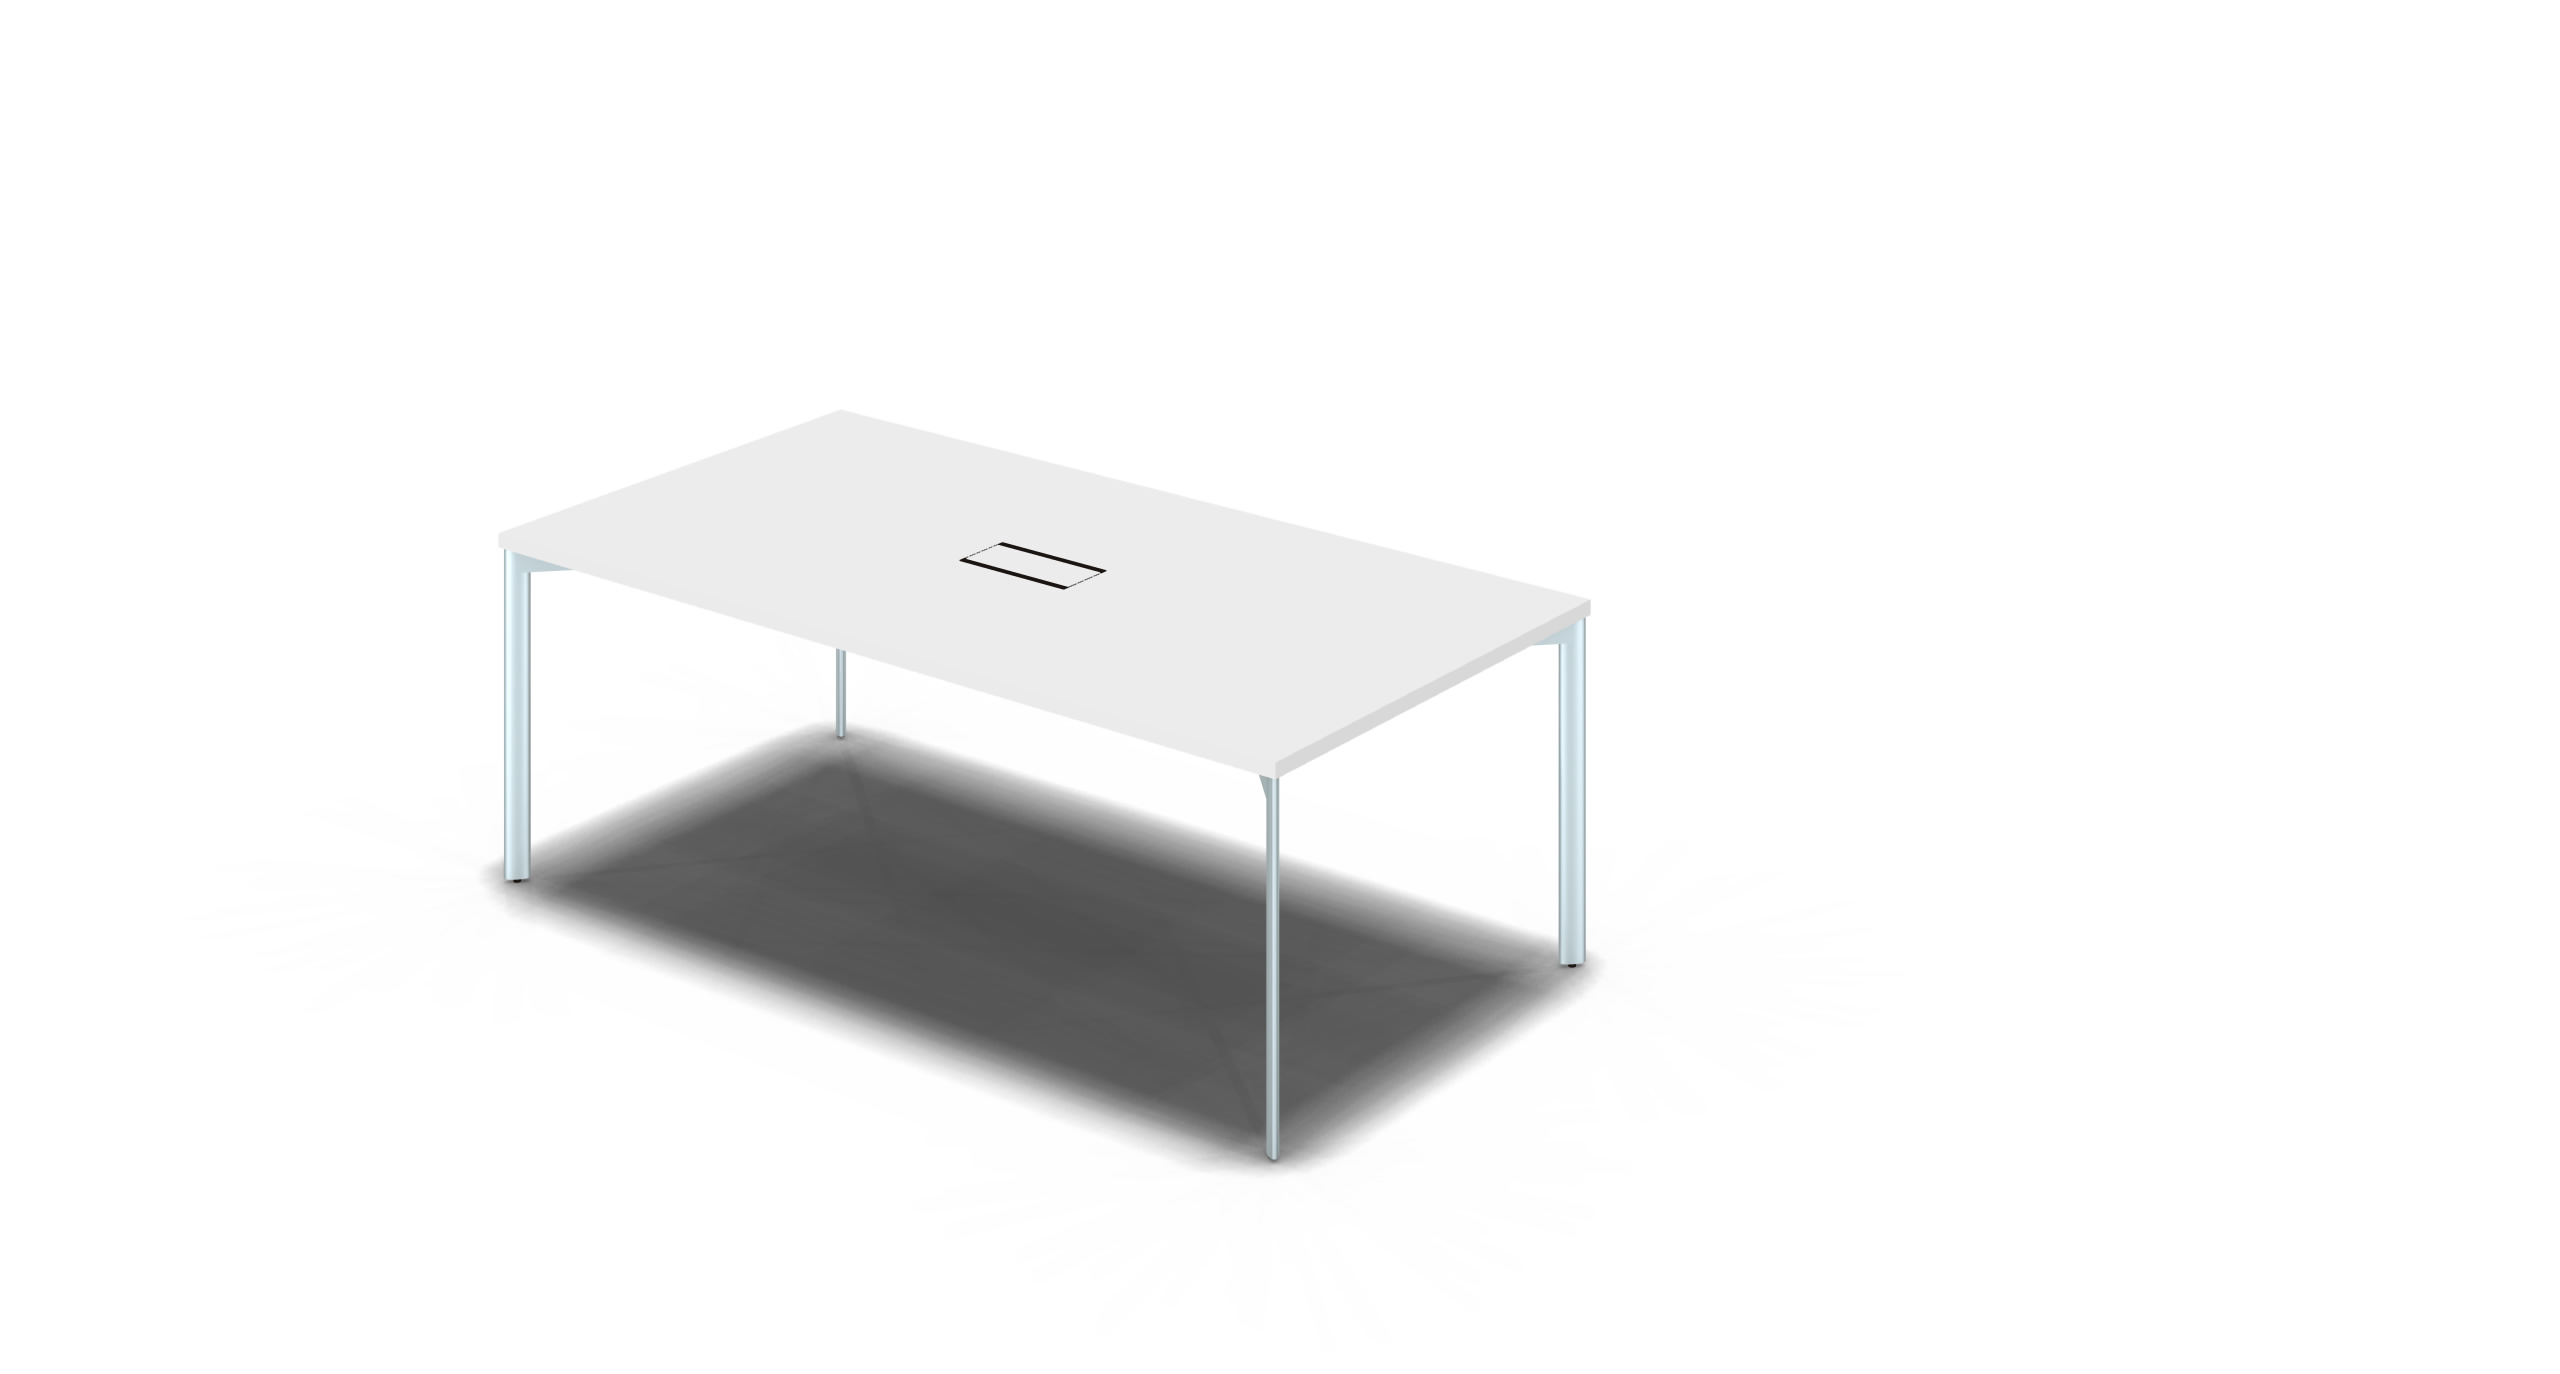 Table_Slim_1800x900_Silver_White_withOption